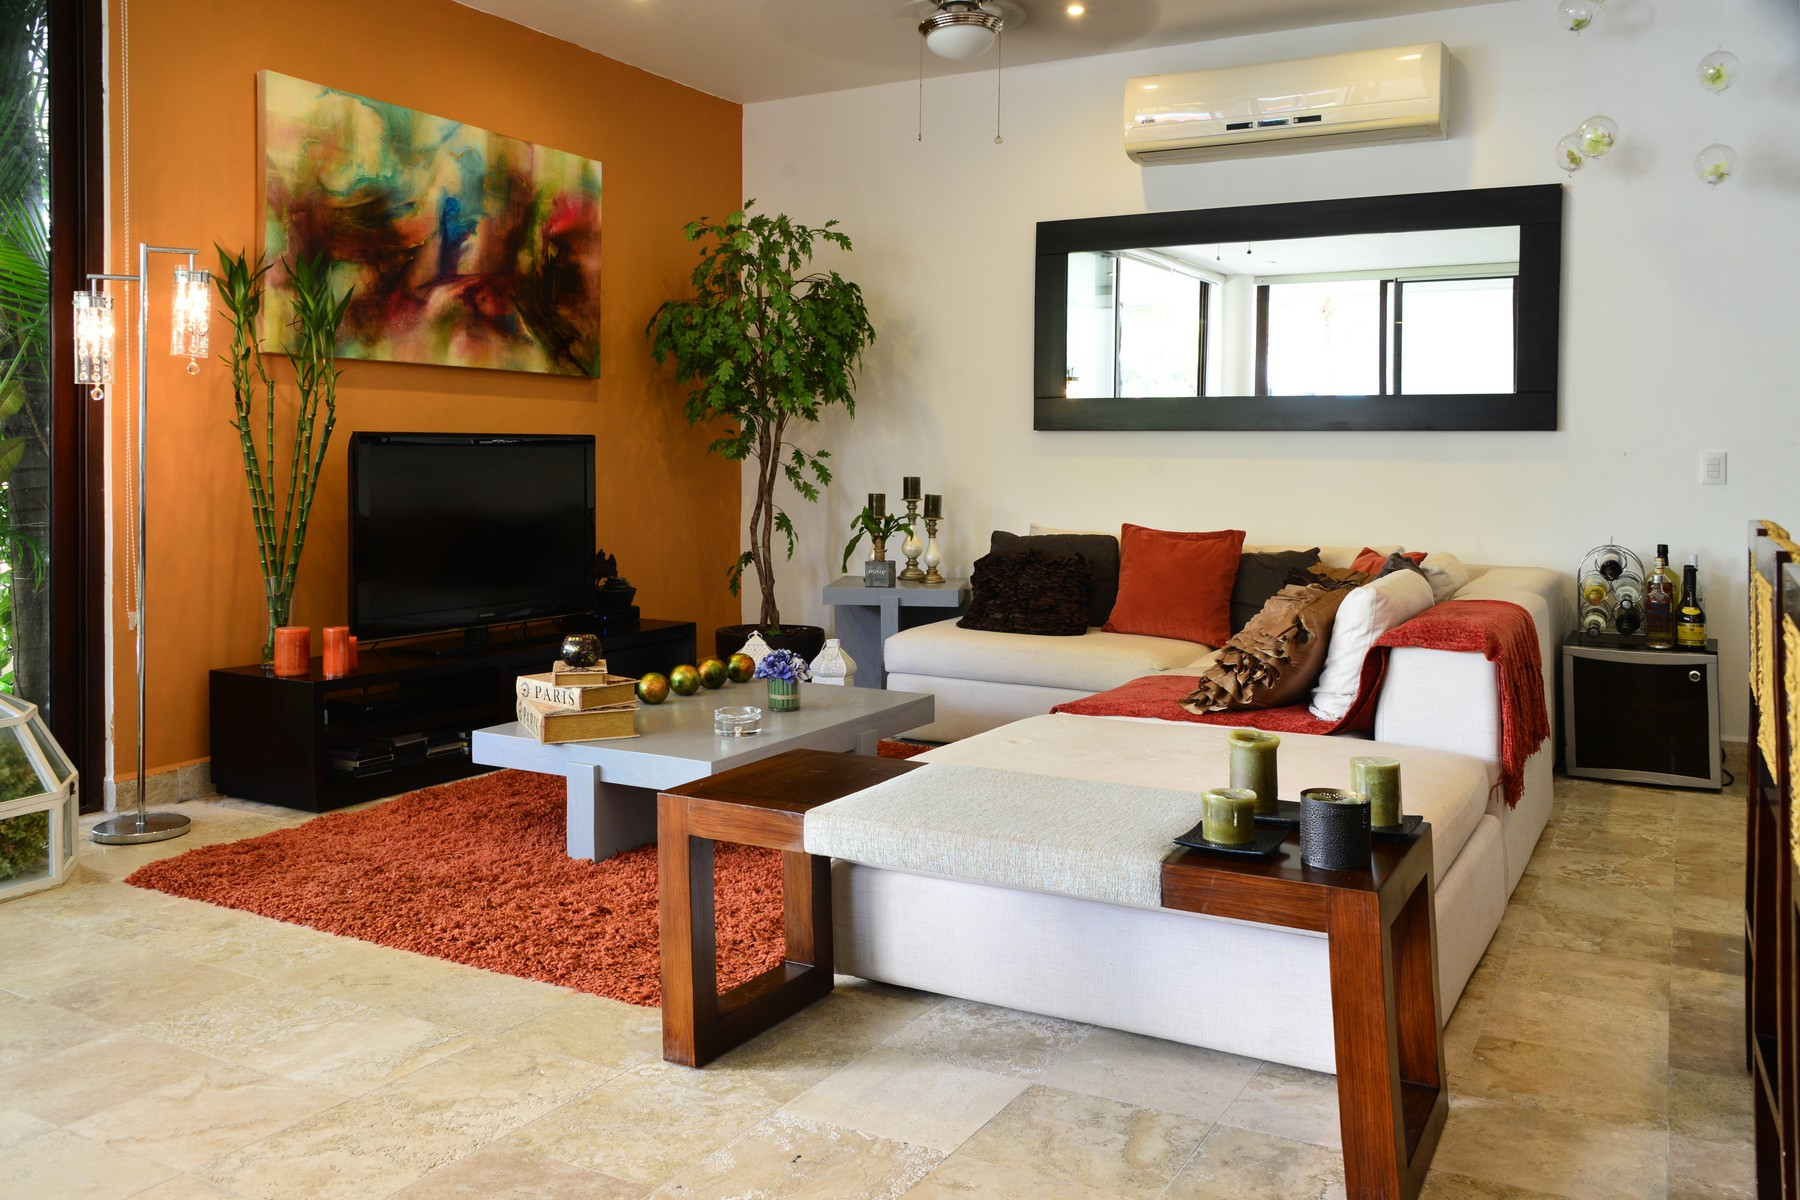 Single Family Home for Sale at AKOYA LIVING IN THE GREEN Akoya, Villas Pakal Ret 3 Chichenitza Lot 19 Mza 16 Playa Del Carmen, Quintana Roo 77710 Mexico